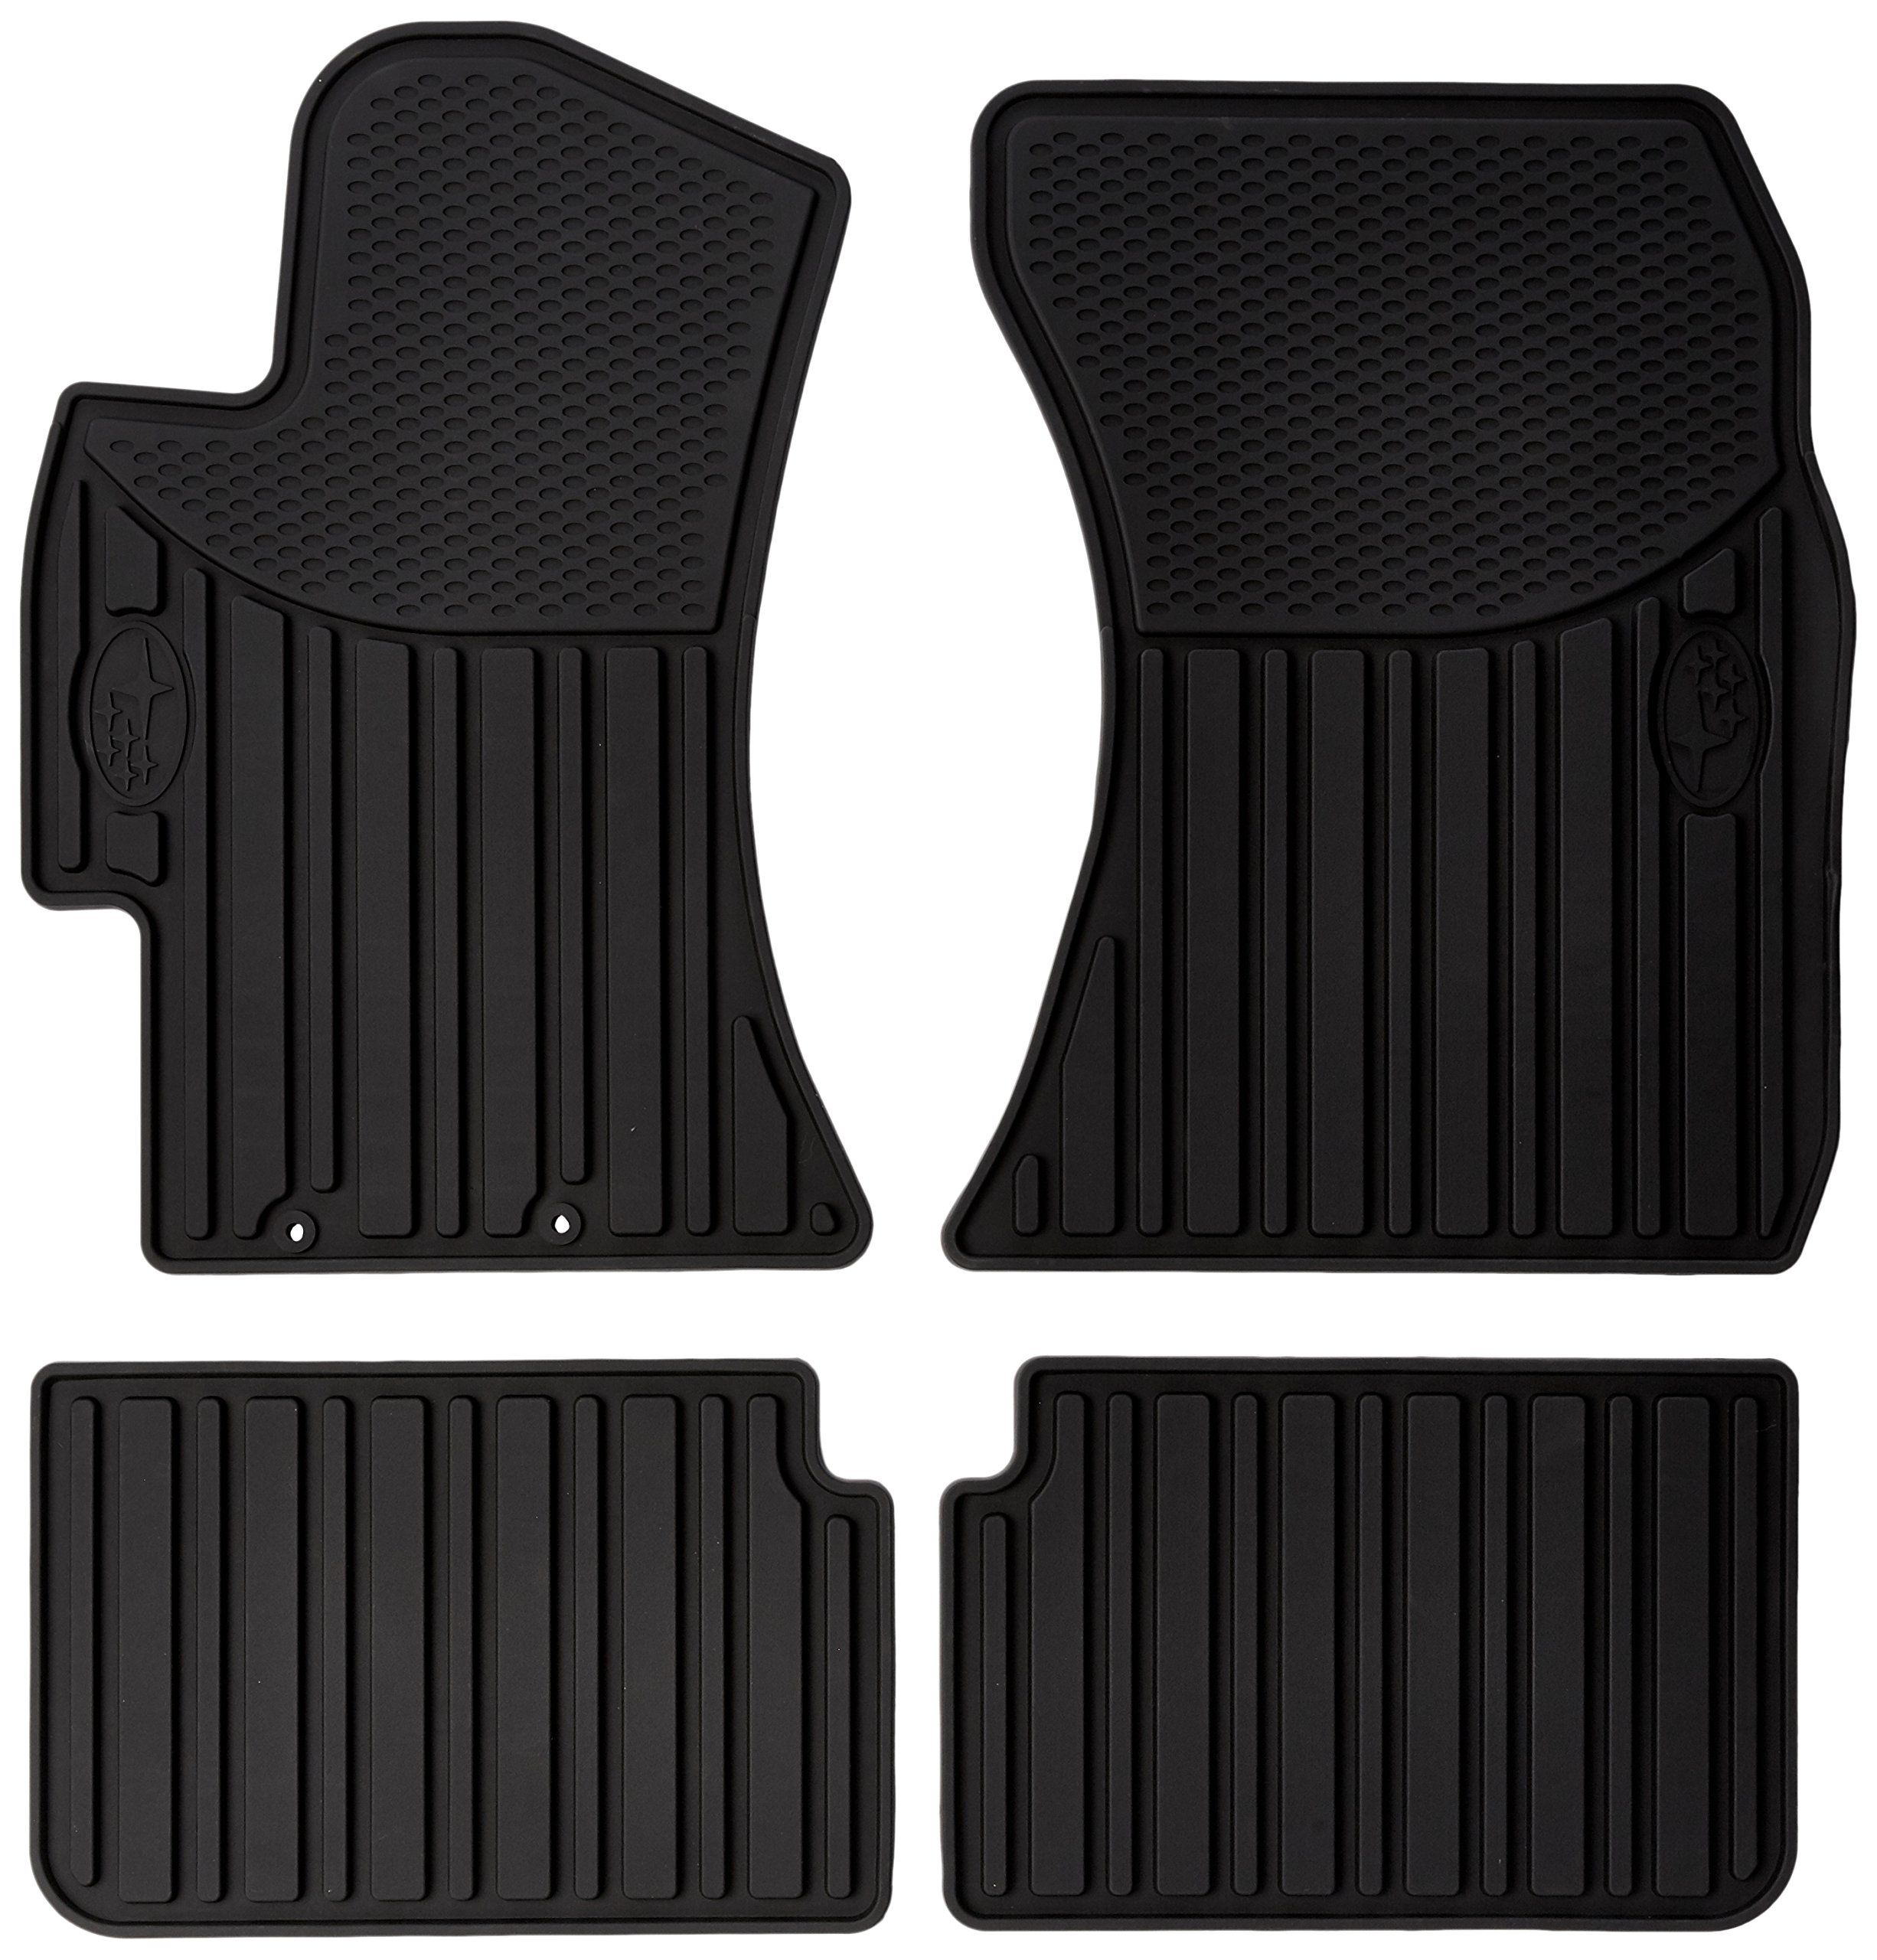 Subaru J501sfg200 Oem All Weather Floor Mat Details Can Be Found By Clicking On The Image This Is An Affiliate Link Subaru Kayaking Outfit Floor Mats